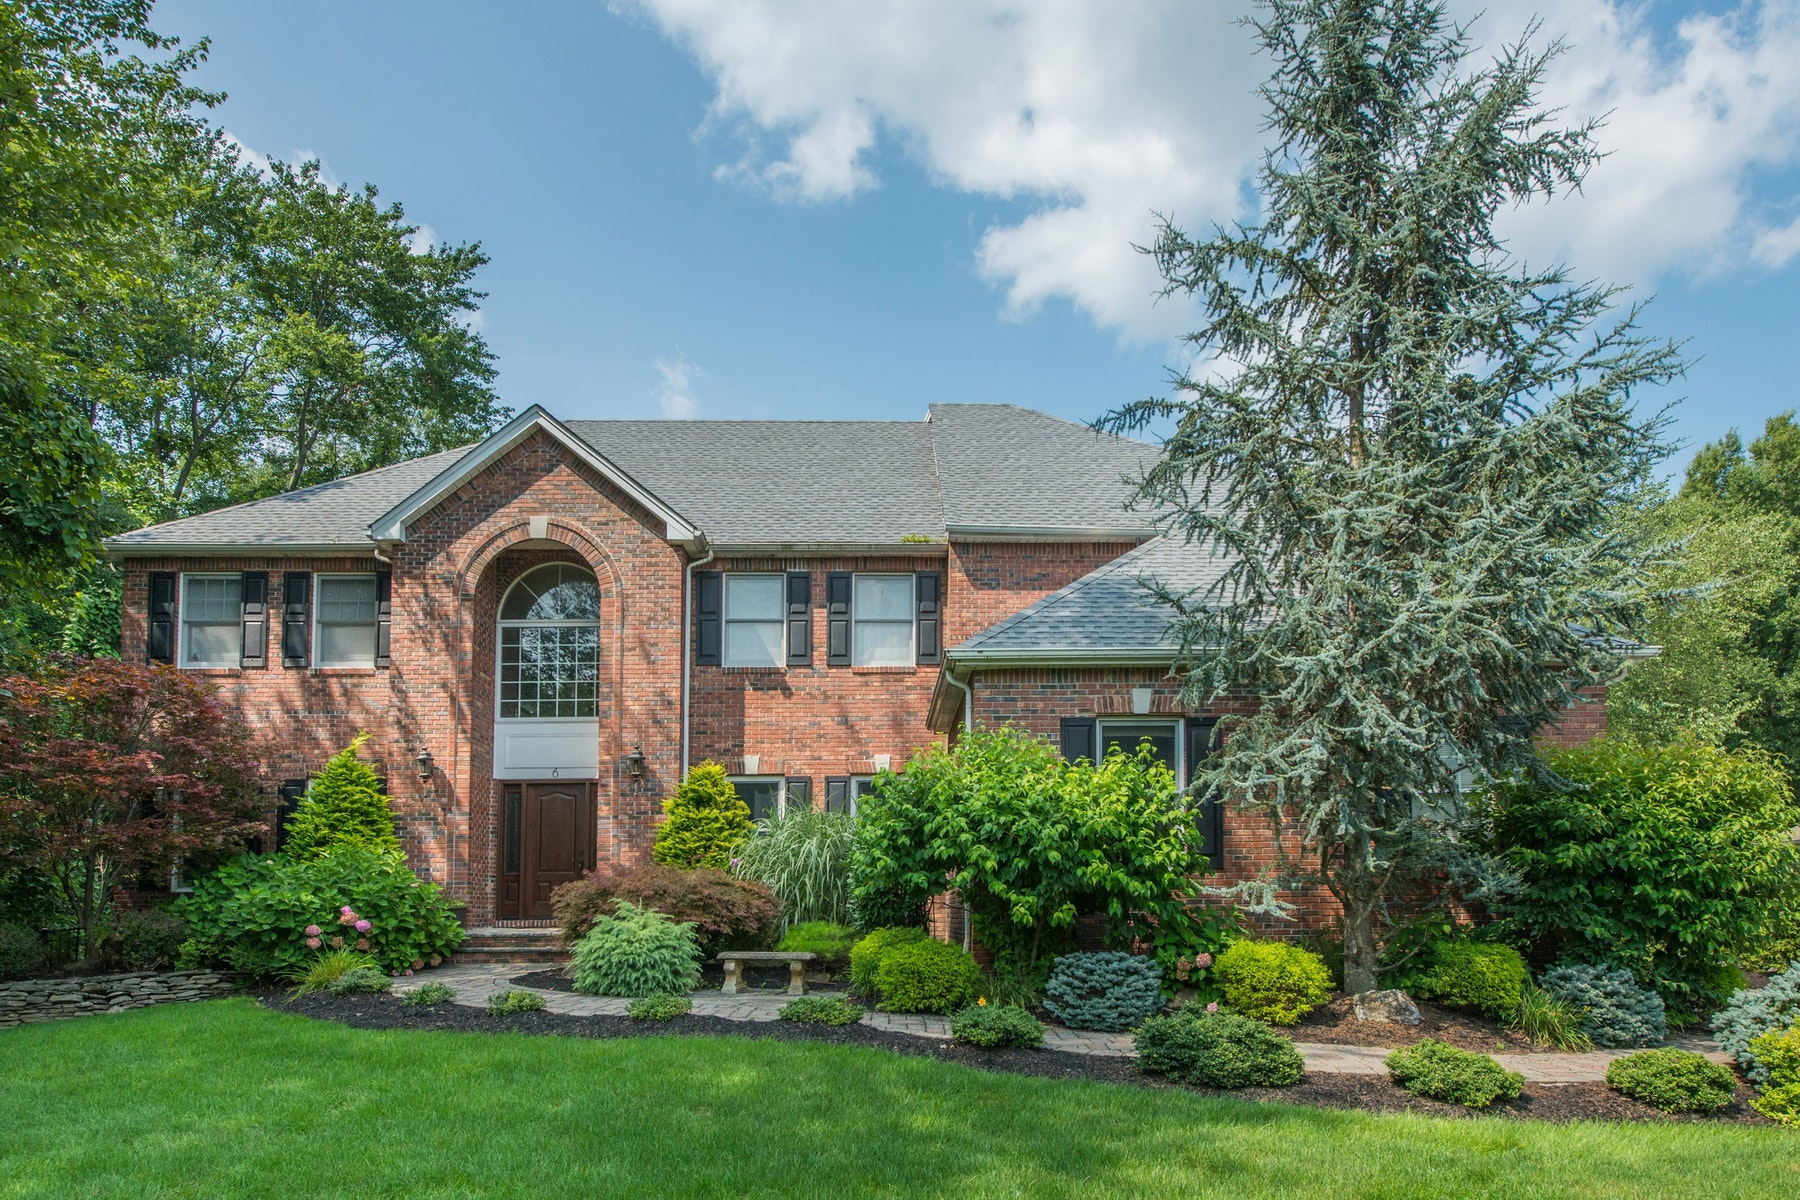 Single Family Homes for Sale at Stunning Center Hall Colonial on Cul-de-sac in Desirable Fox Hollow 6 Rochon Court Montville, New Jersey 07045 United States